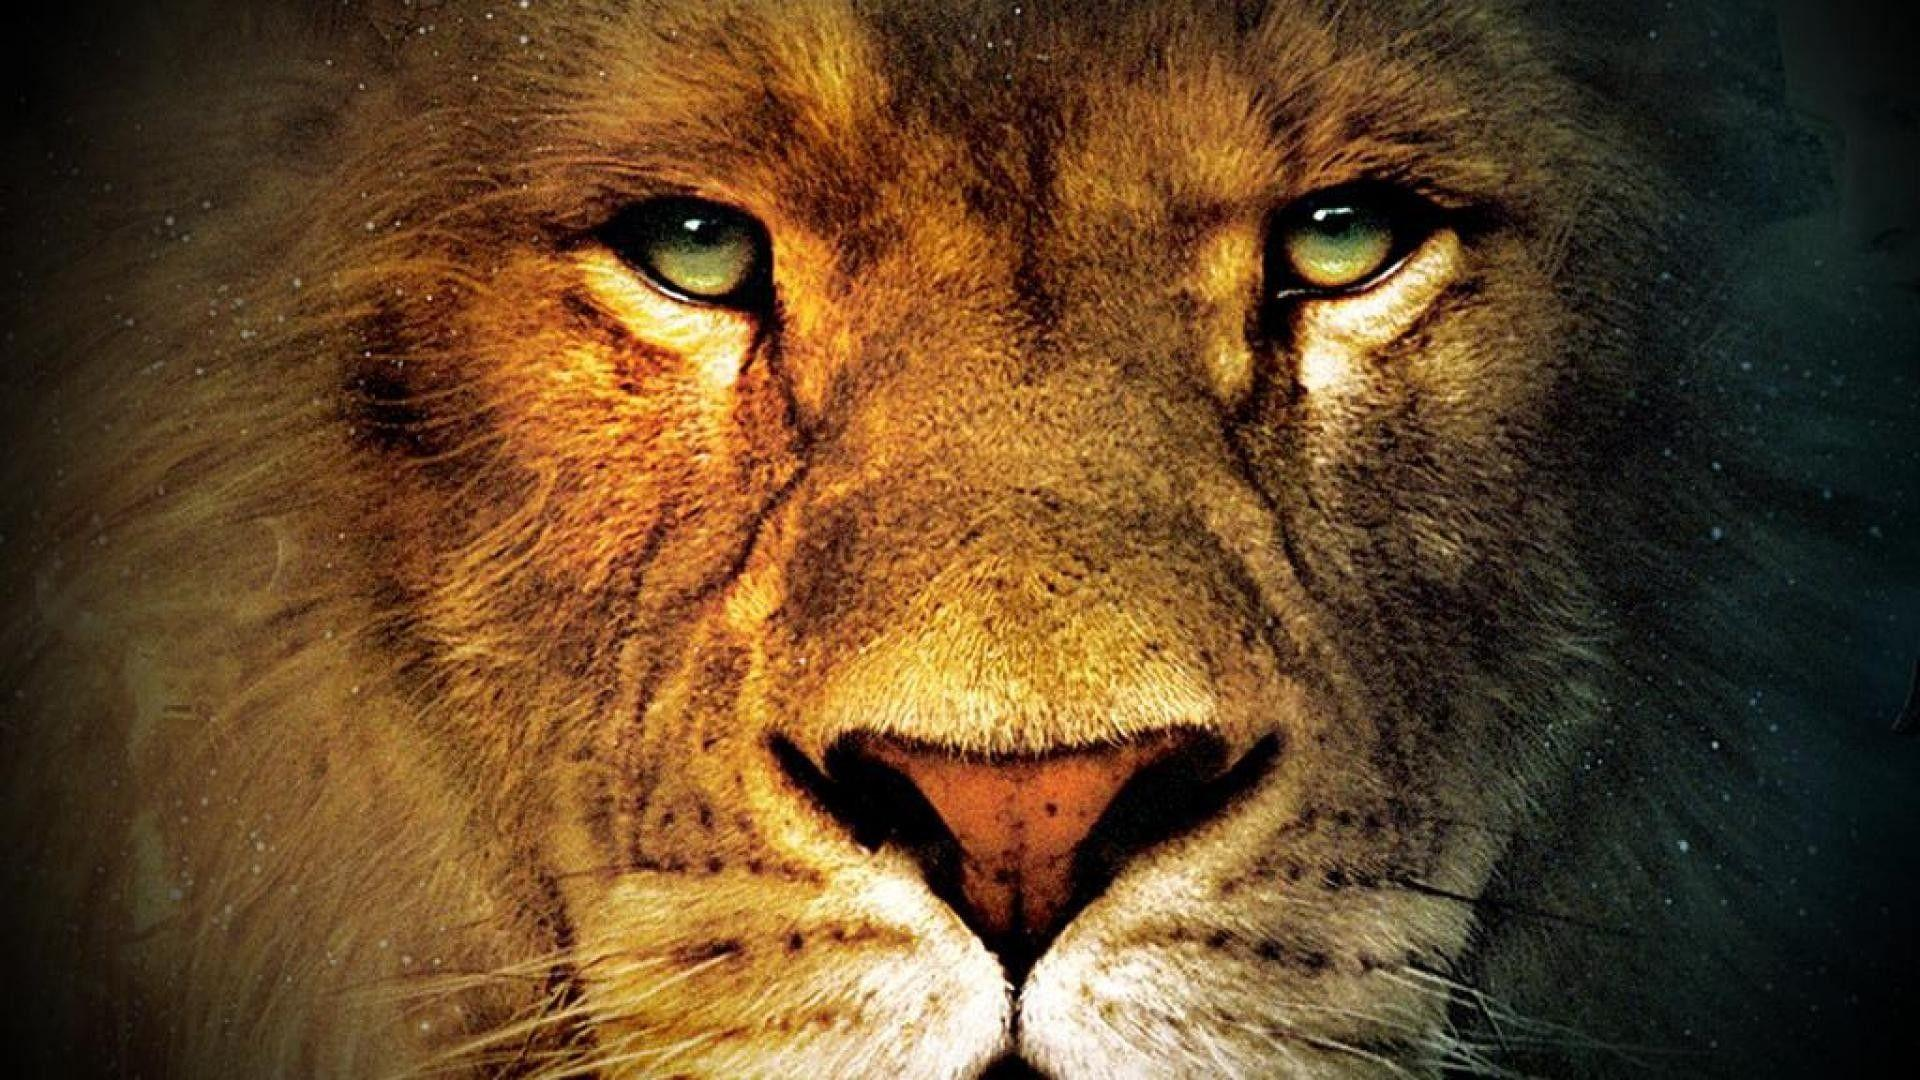 Lion Face Hd Wallpapers Wallpaper Cave